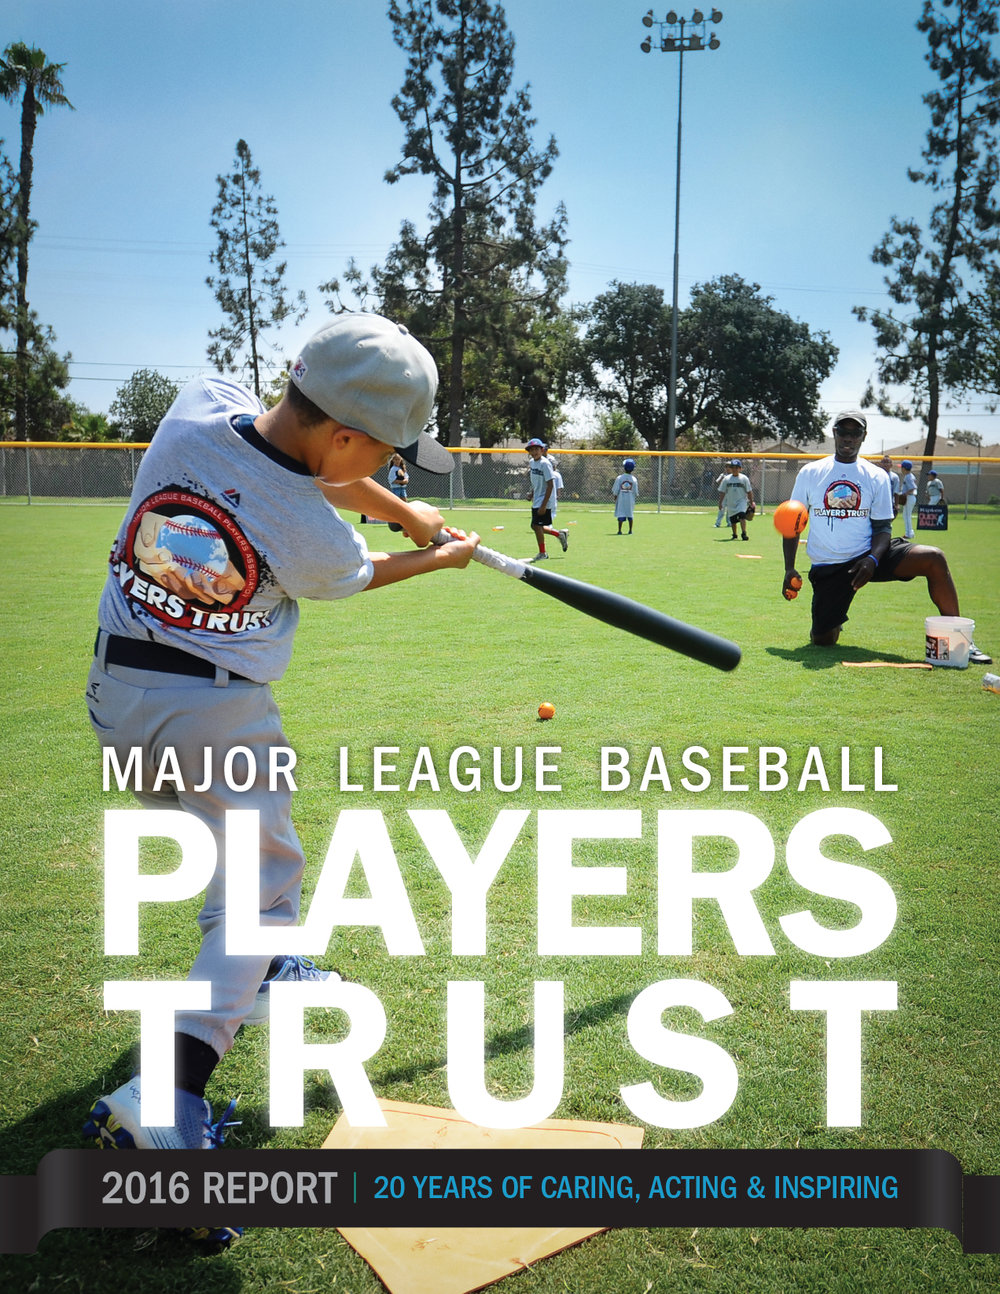 Major League Baseball Players Trust Annual Report by Petting Zoo